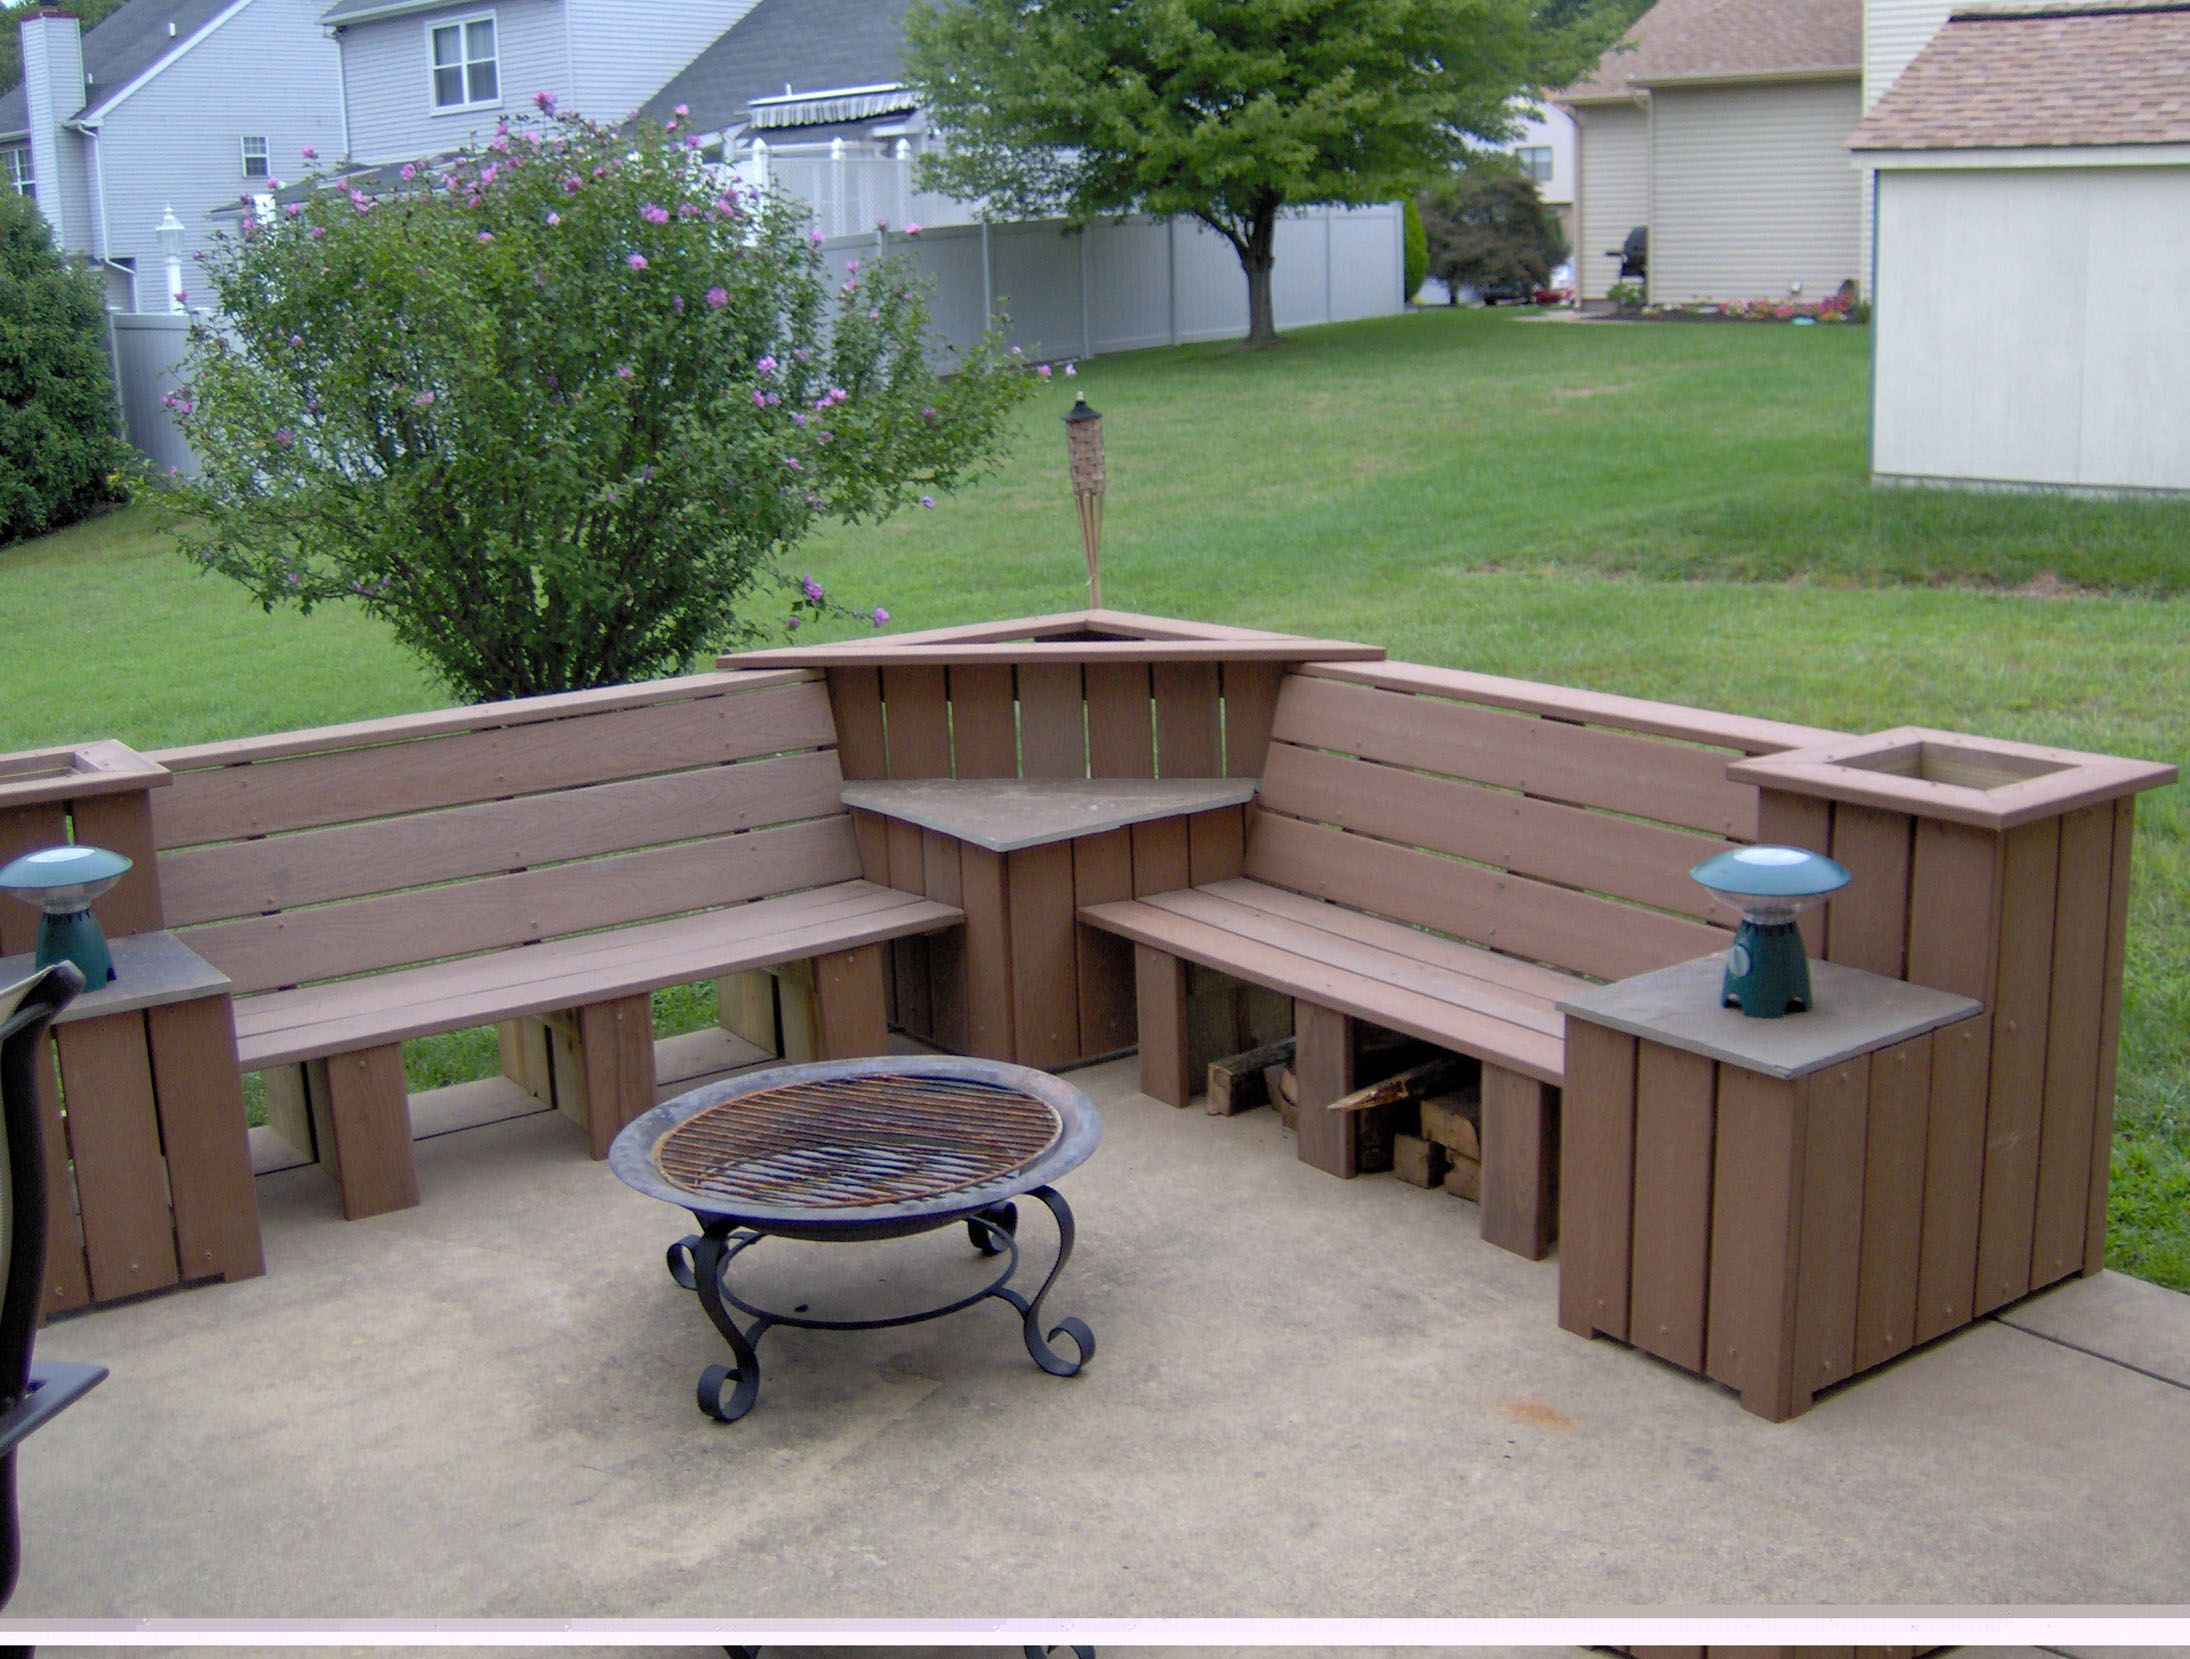 Tips for Making Your Own Outdoor Furniture diy Pinterest